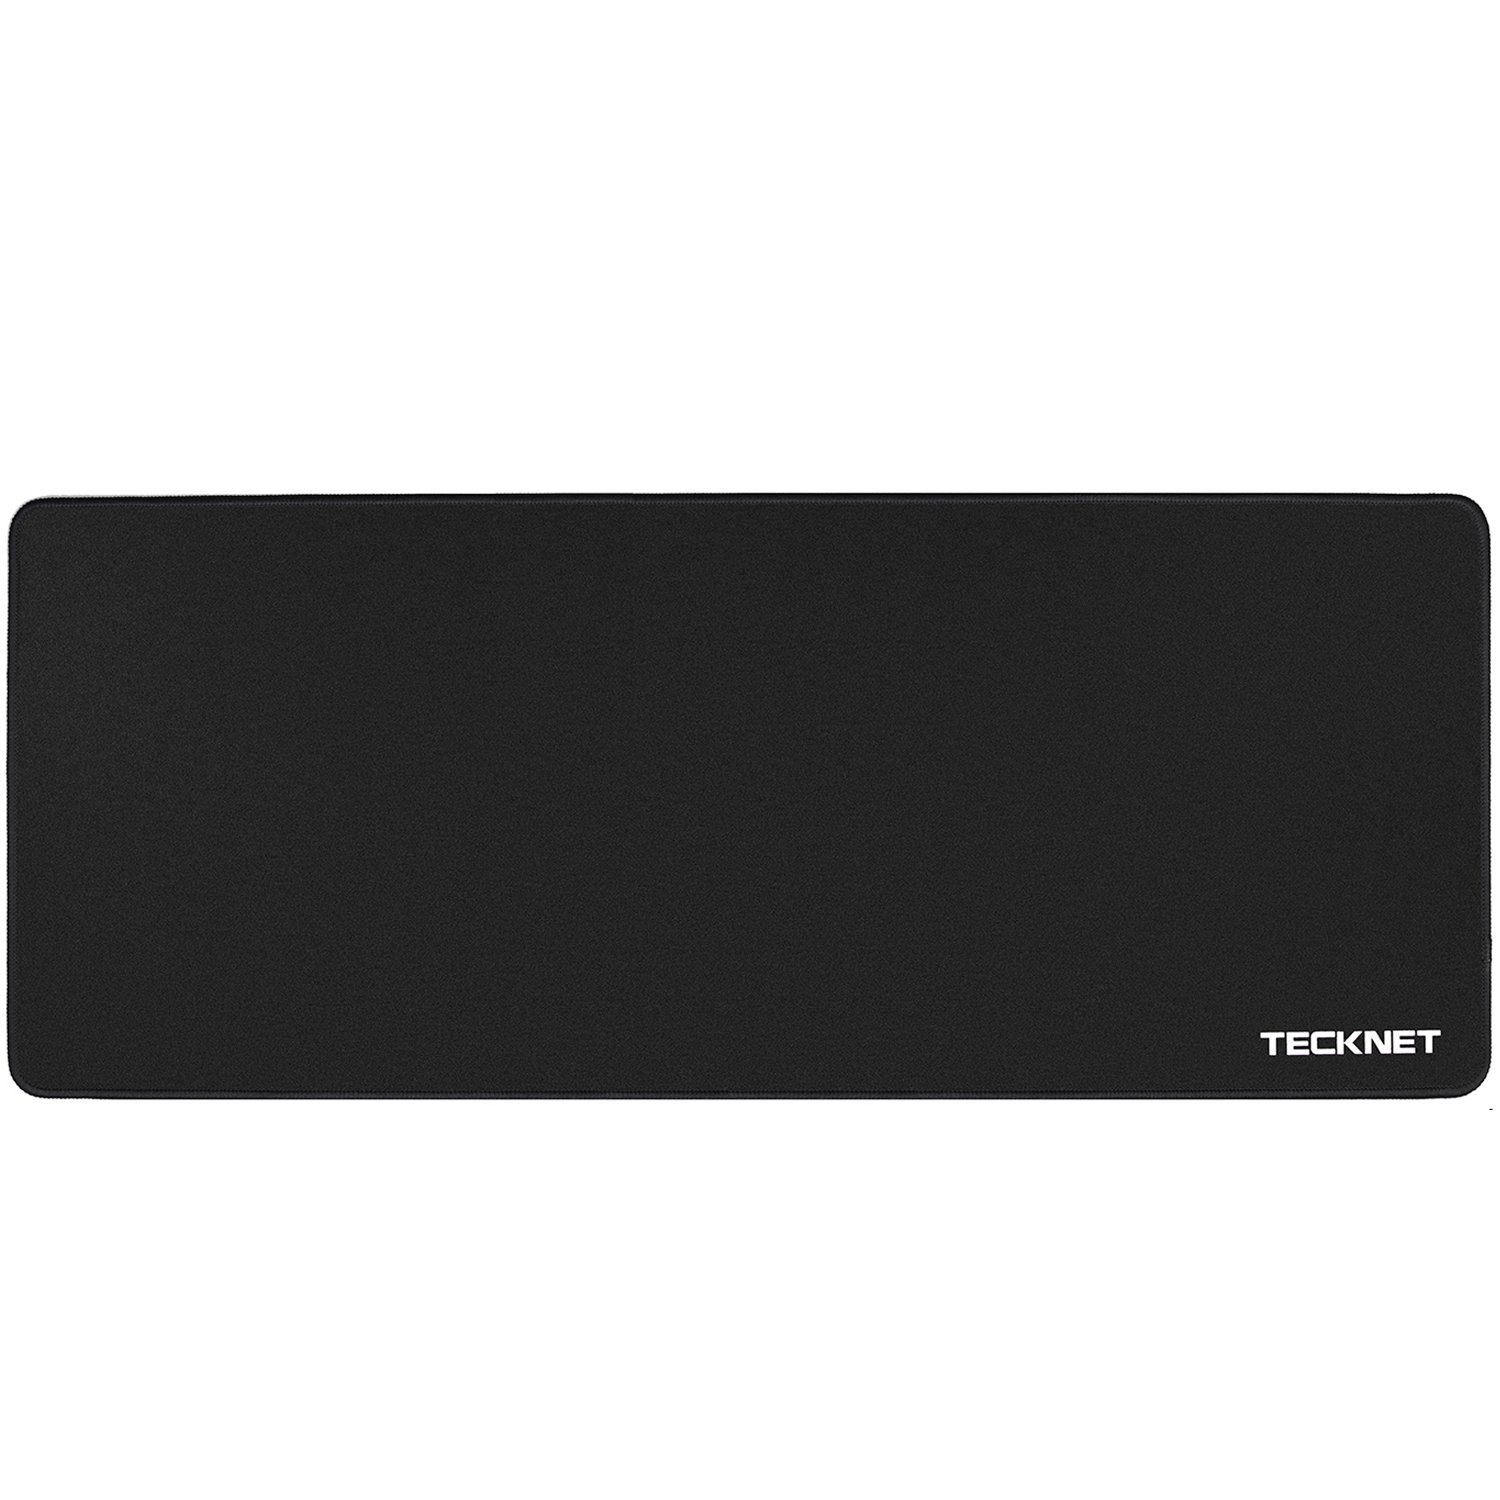 TeckNet G103 Gaming Mouse Mat (XXL) Smooth Silk processed Low Friction surface, Non Slippary Rubber Base, 35.4 inch x 17.7 inch